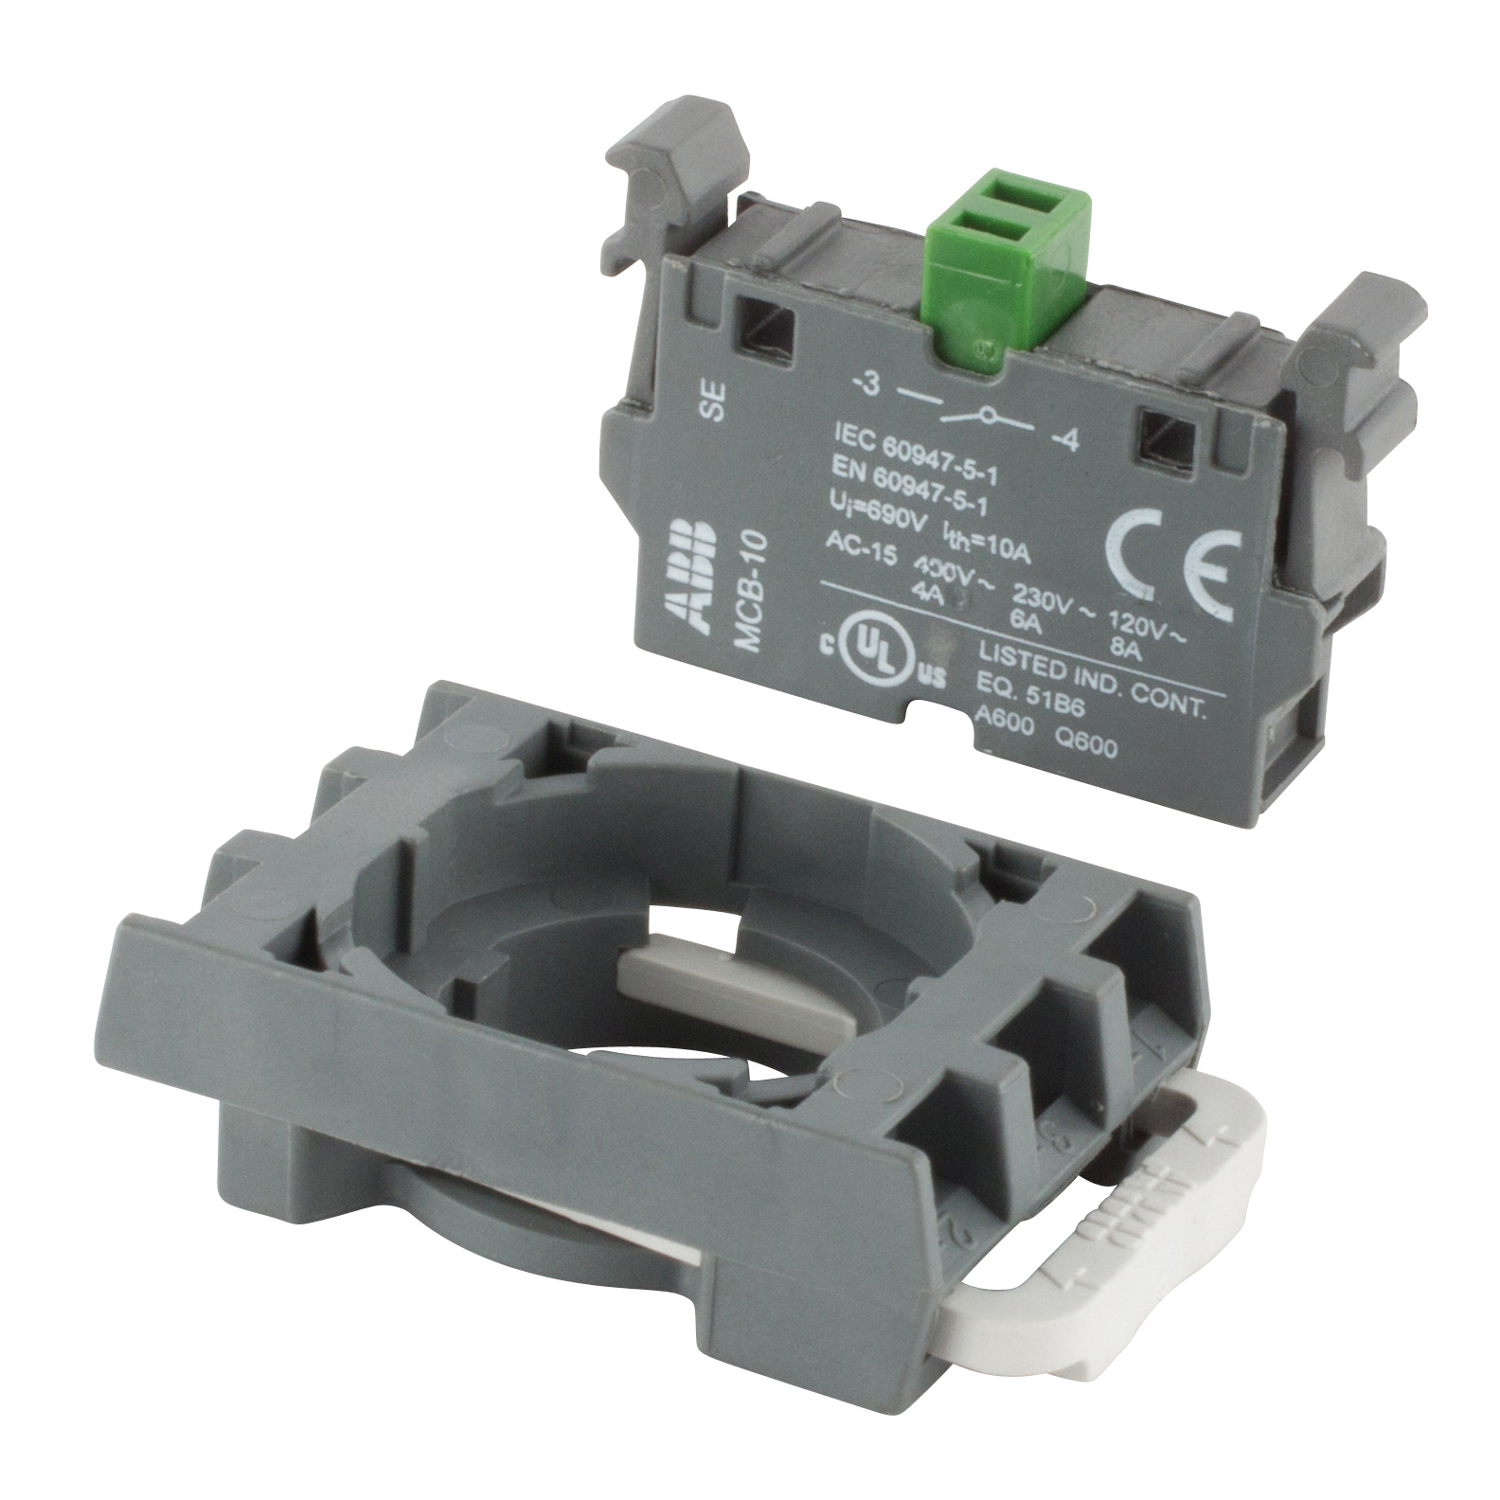 ABB MCBH-10 Front mounted 1 NO contact block with holder designed for non-illuminated operators